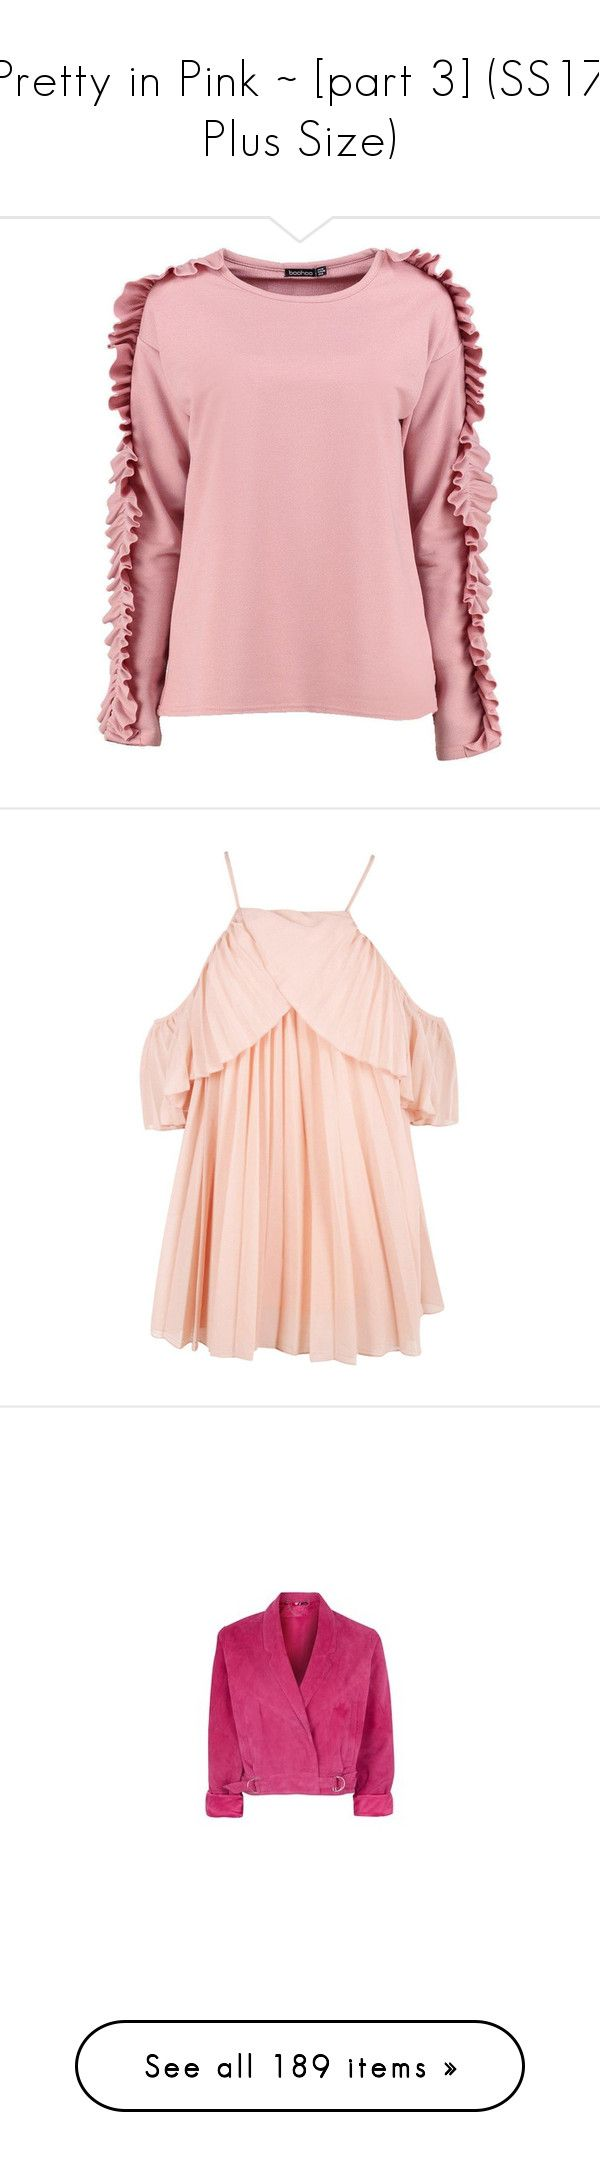 """""""Pretty in Pink ~ [part 3] (SS17 Plus Size)"""" by foolsuk ❤ liked on Polyvore featuring tops, hoodies, sweatshirts, crop top, pink sweatshirts, oversized off the shoulder sweatshirt, bralette crop top, pink off the shoulder top, off the shoulder crop top and polka dot crop top"""